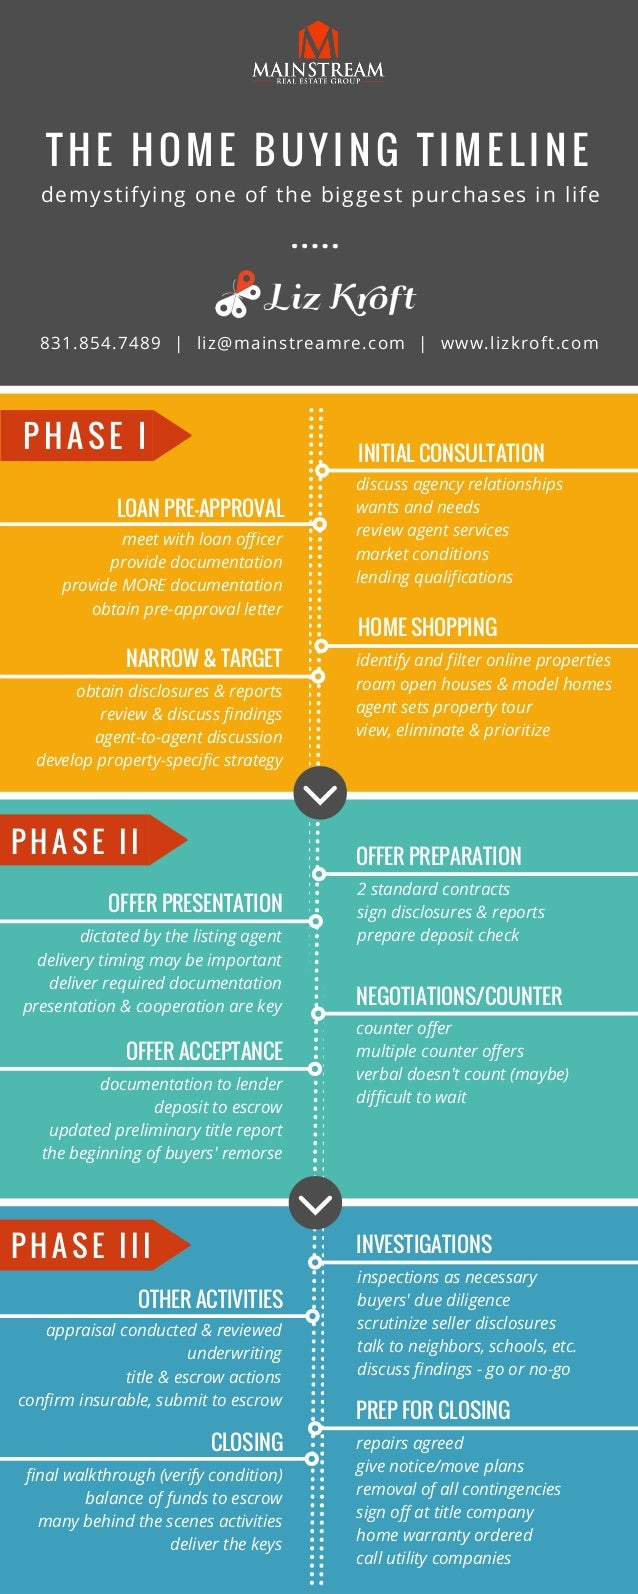 First Time Buyers >> The Home Buying Timeline [infographic]